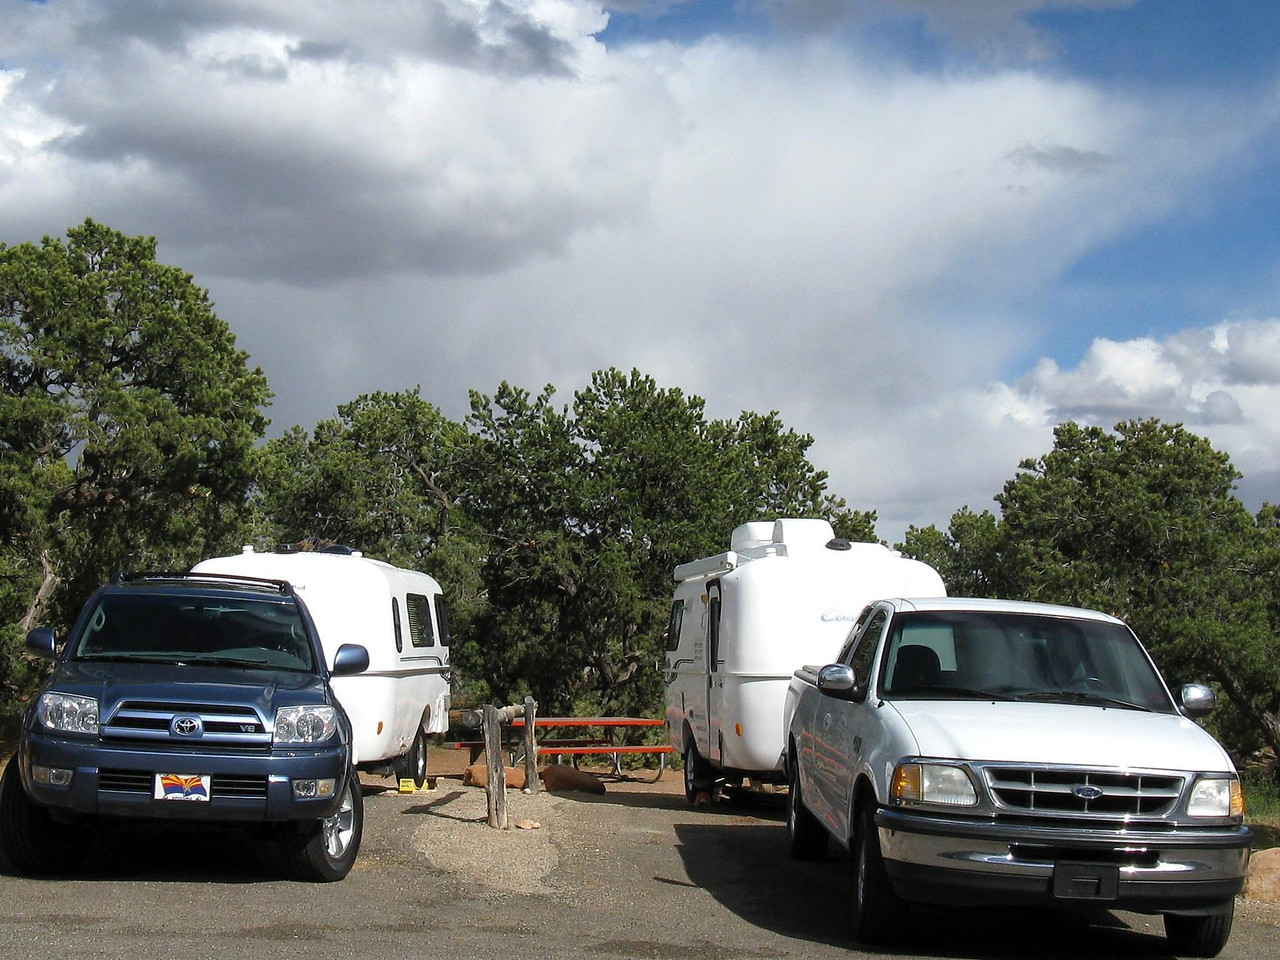 Our Gemini campsites, the only ones in the campground